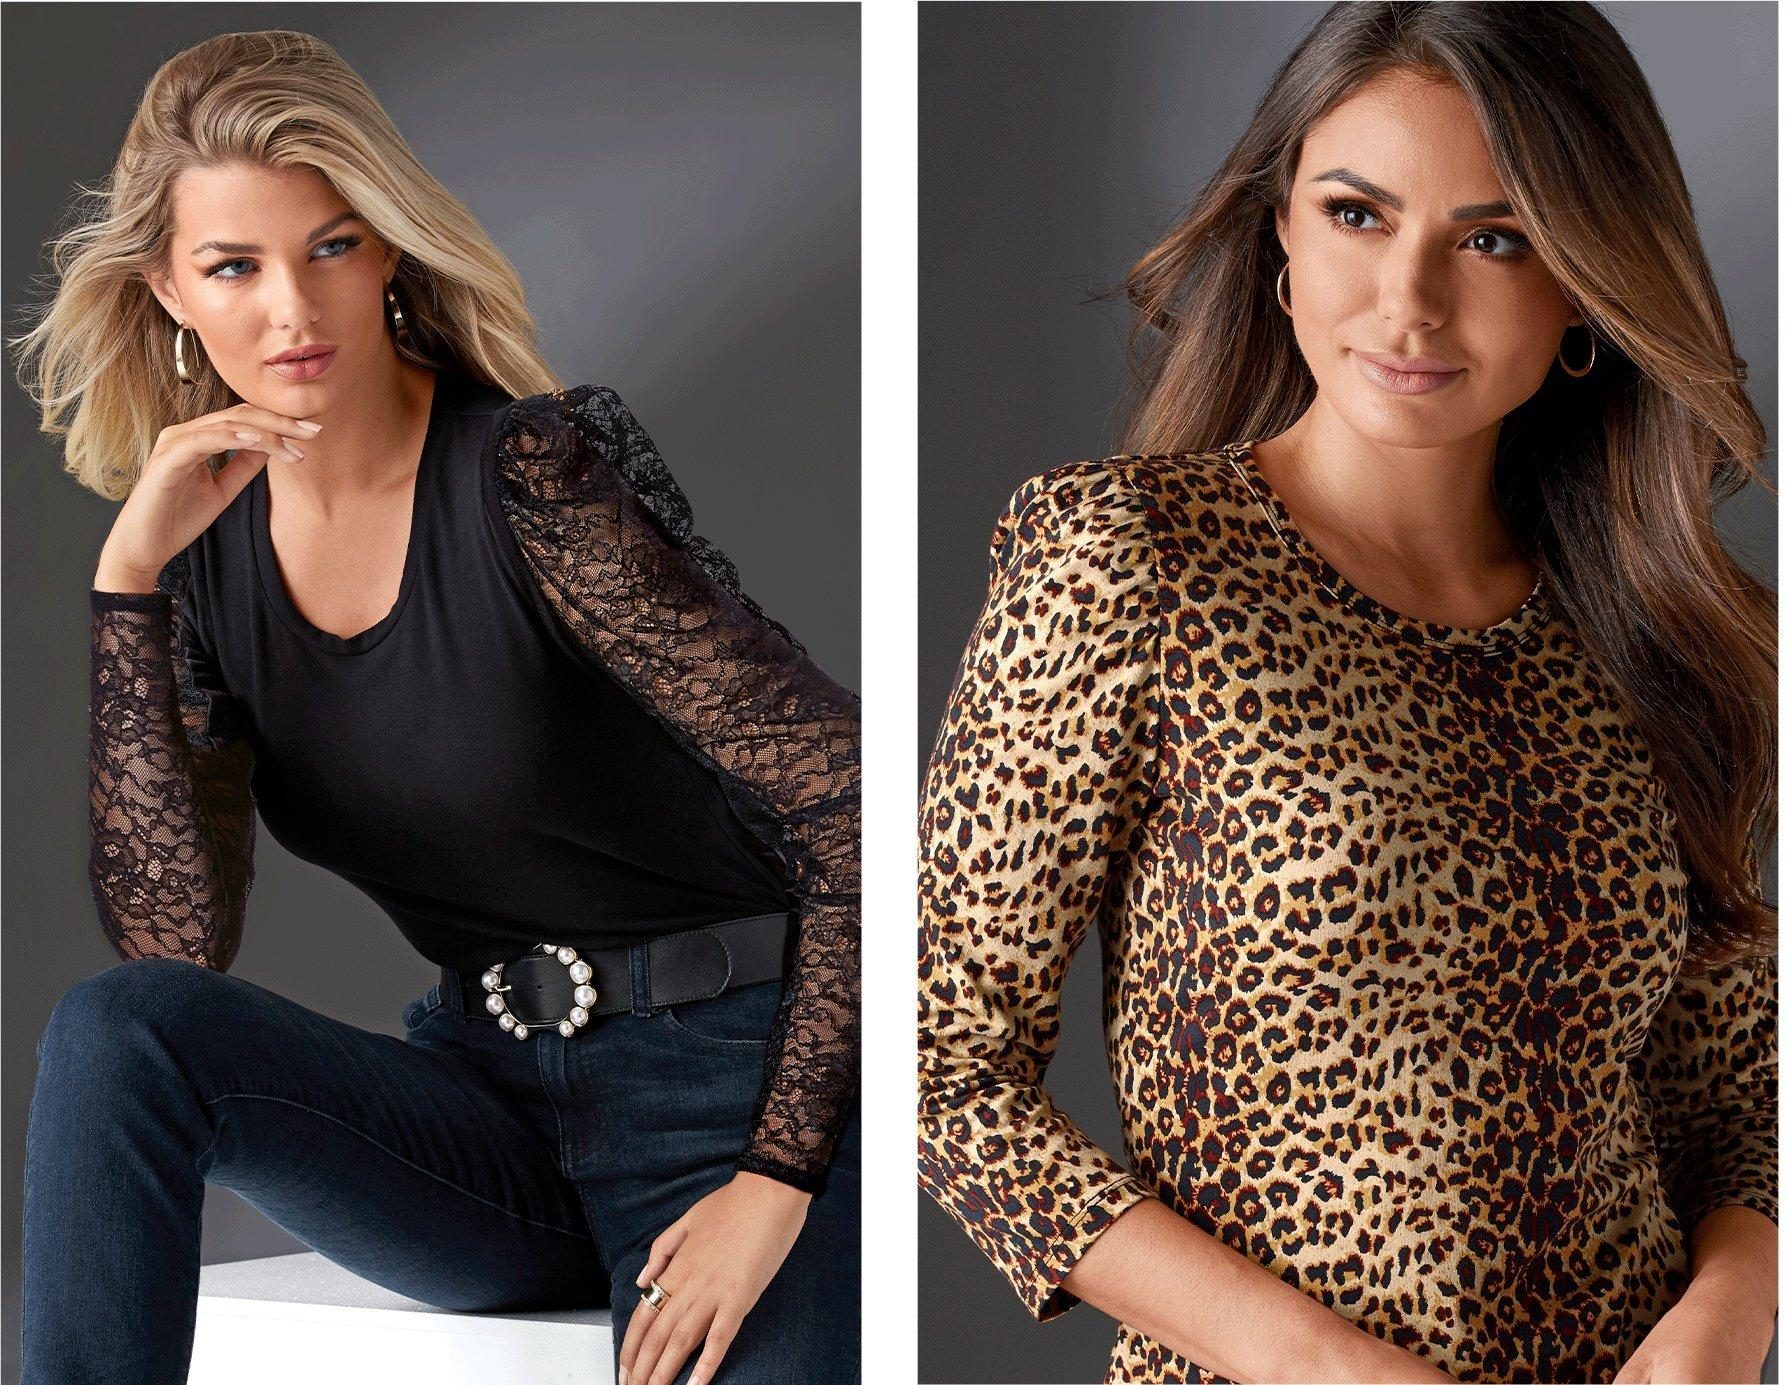 left model wearing a black puff-sleeve lace long-sleeve top, pearl embellished black belt, silver hoop earrings, and jeans. right model wearing a leopard print puff-sleeve three-quarter sleeve tee.